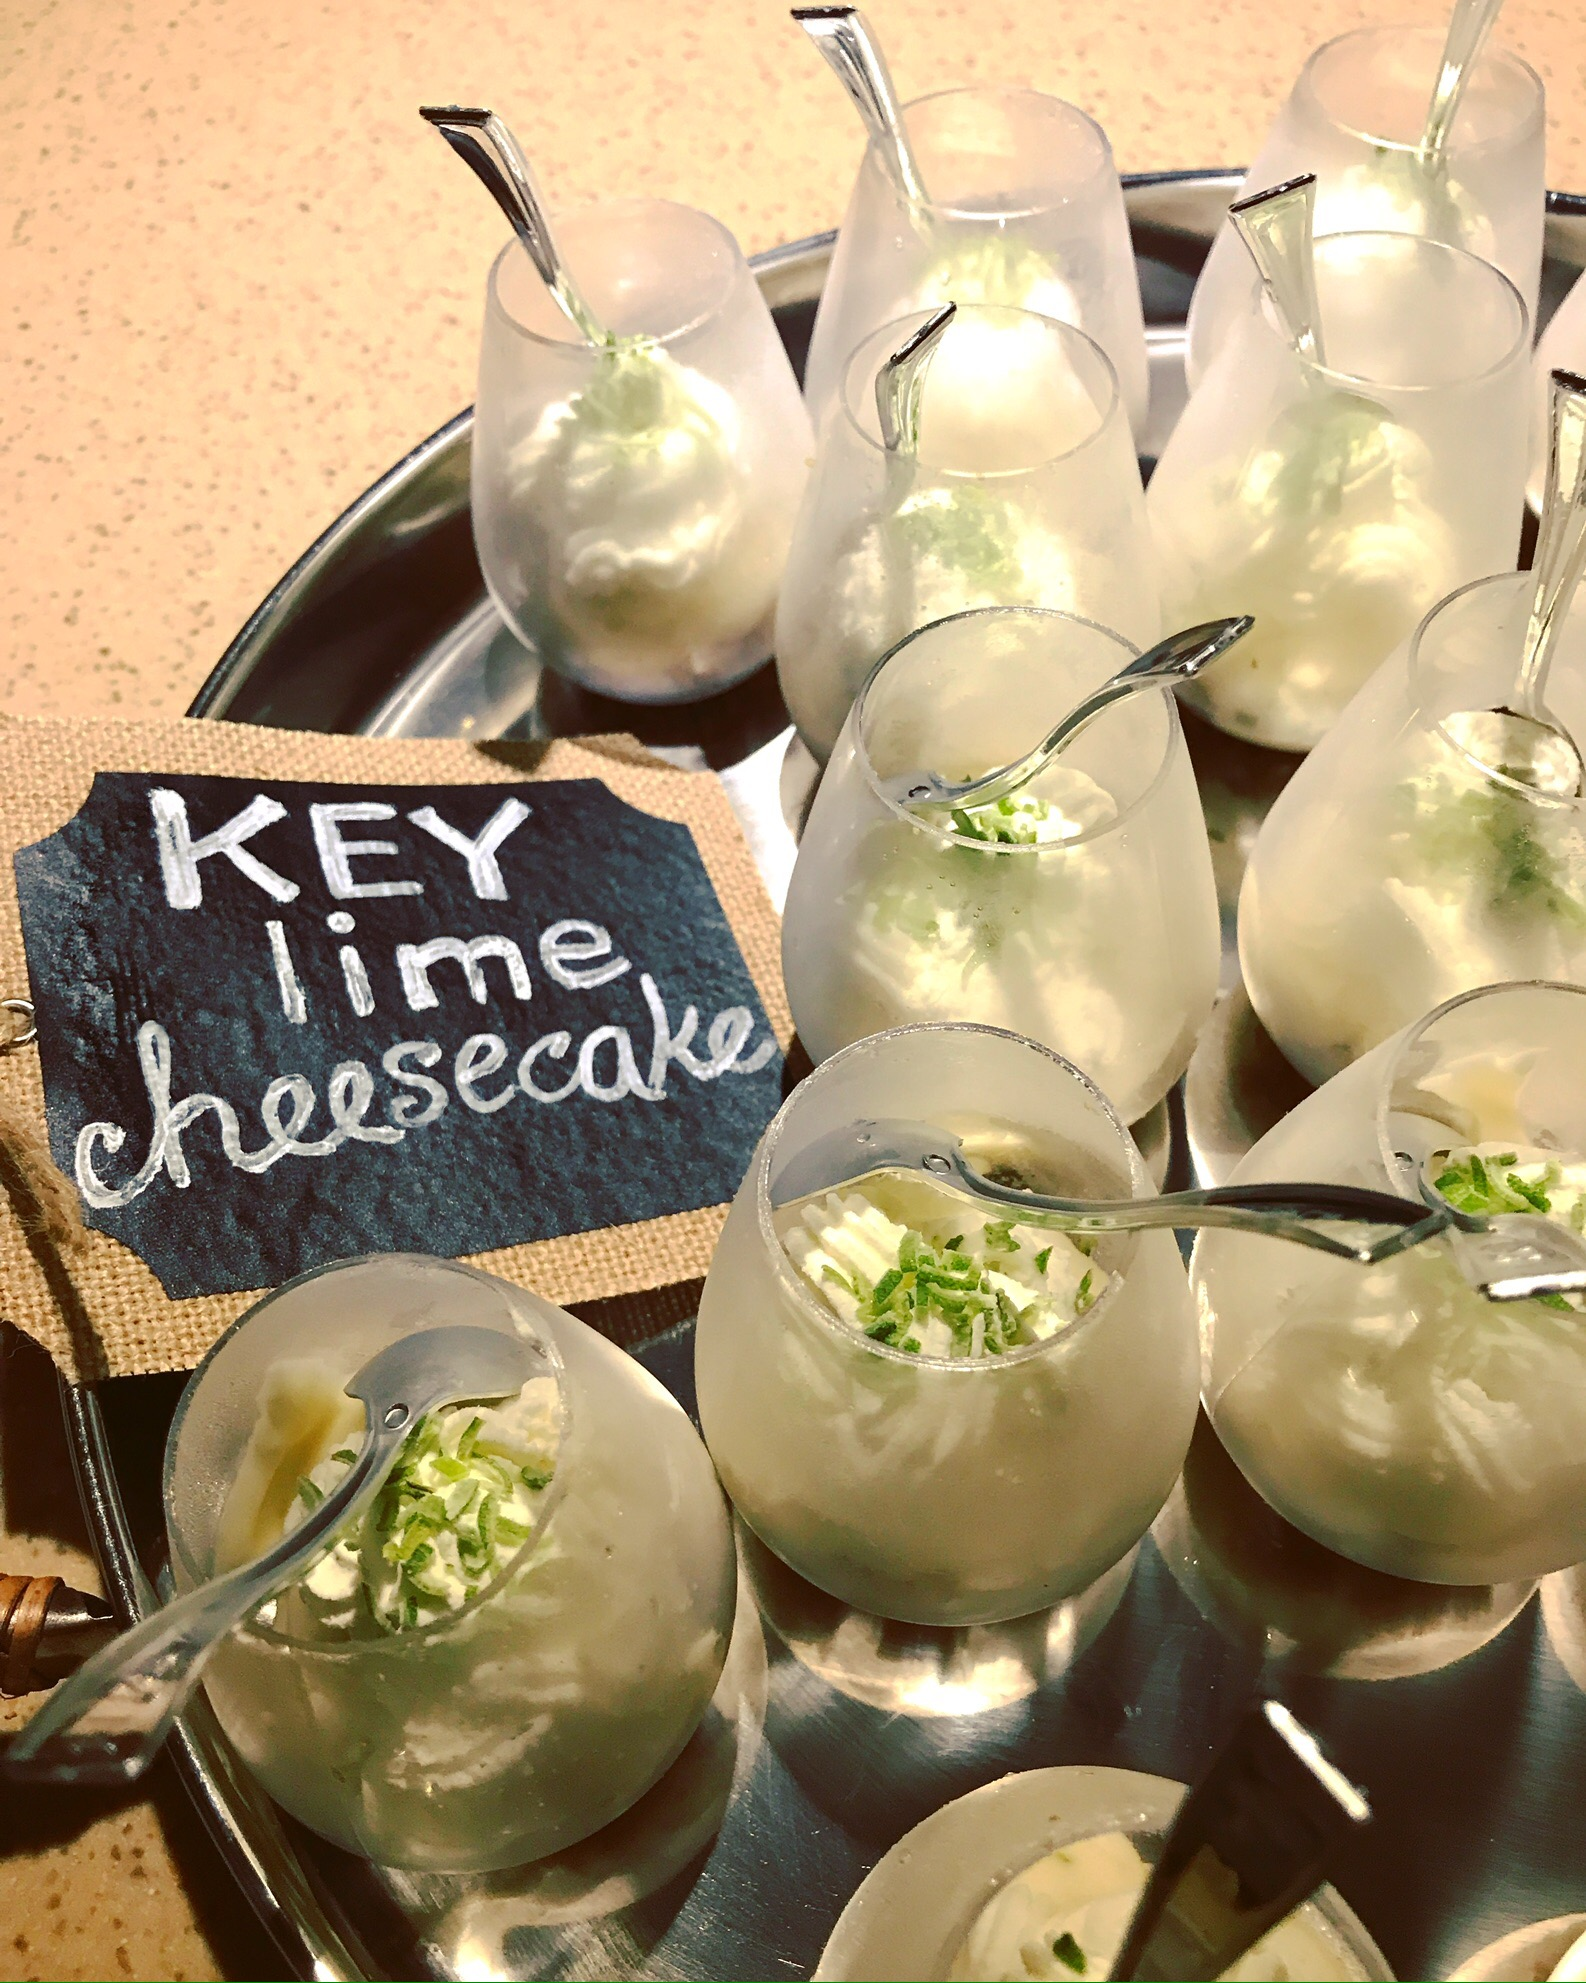 Instagram picture from Nuit Blanche of Mini Frozen Key Lime Cheesecakes